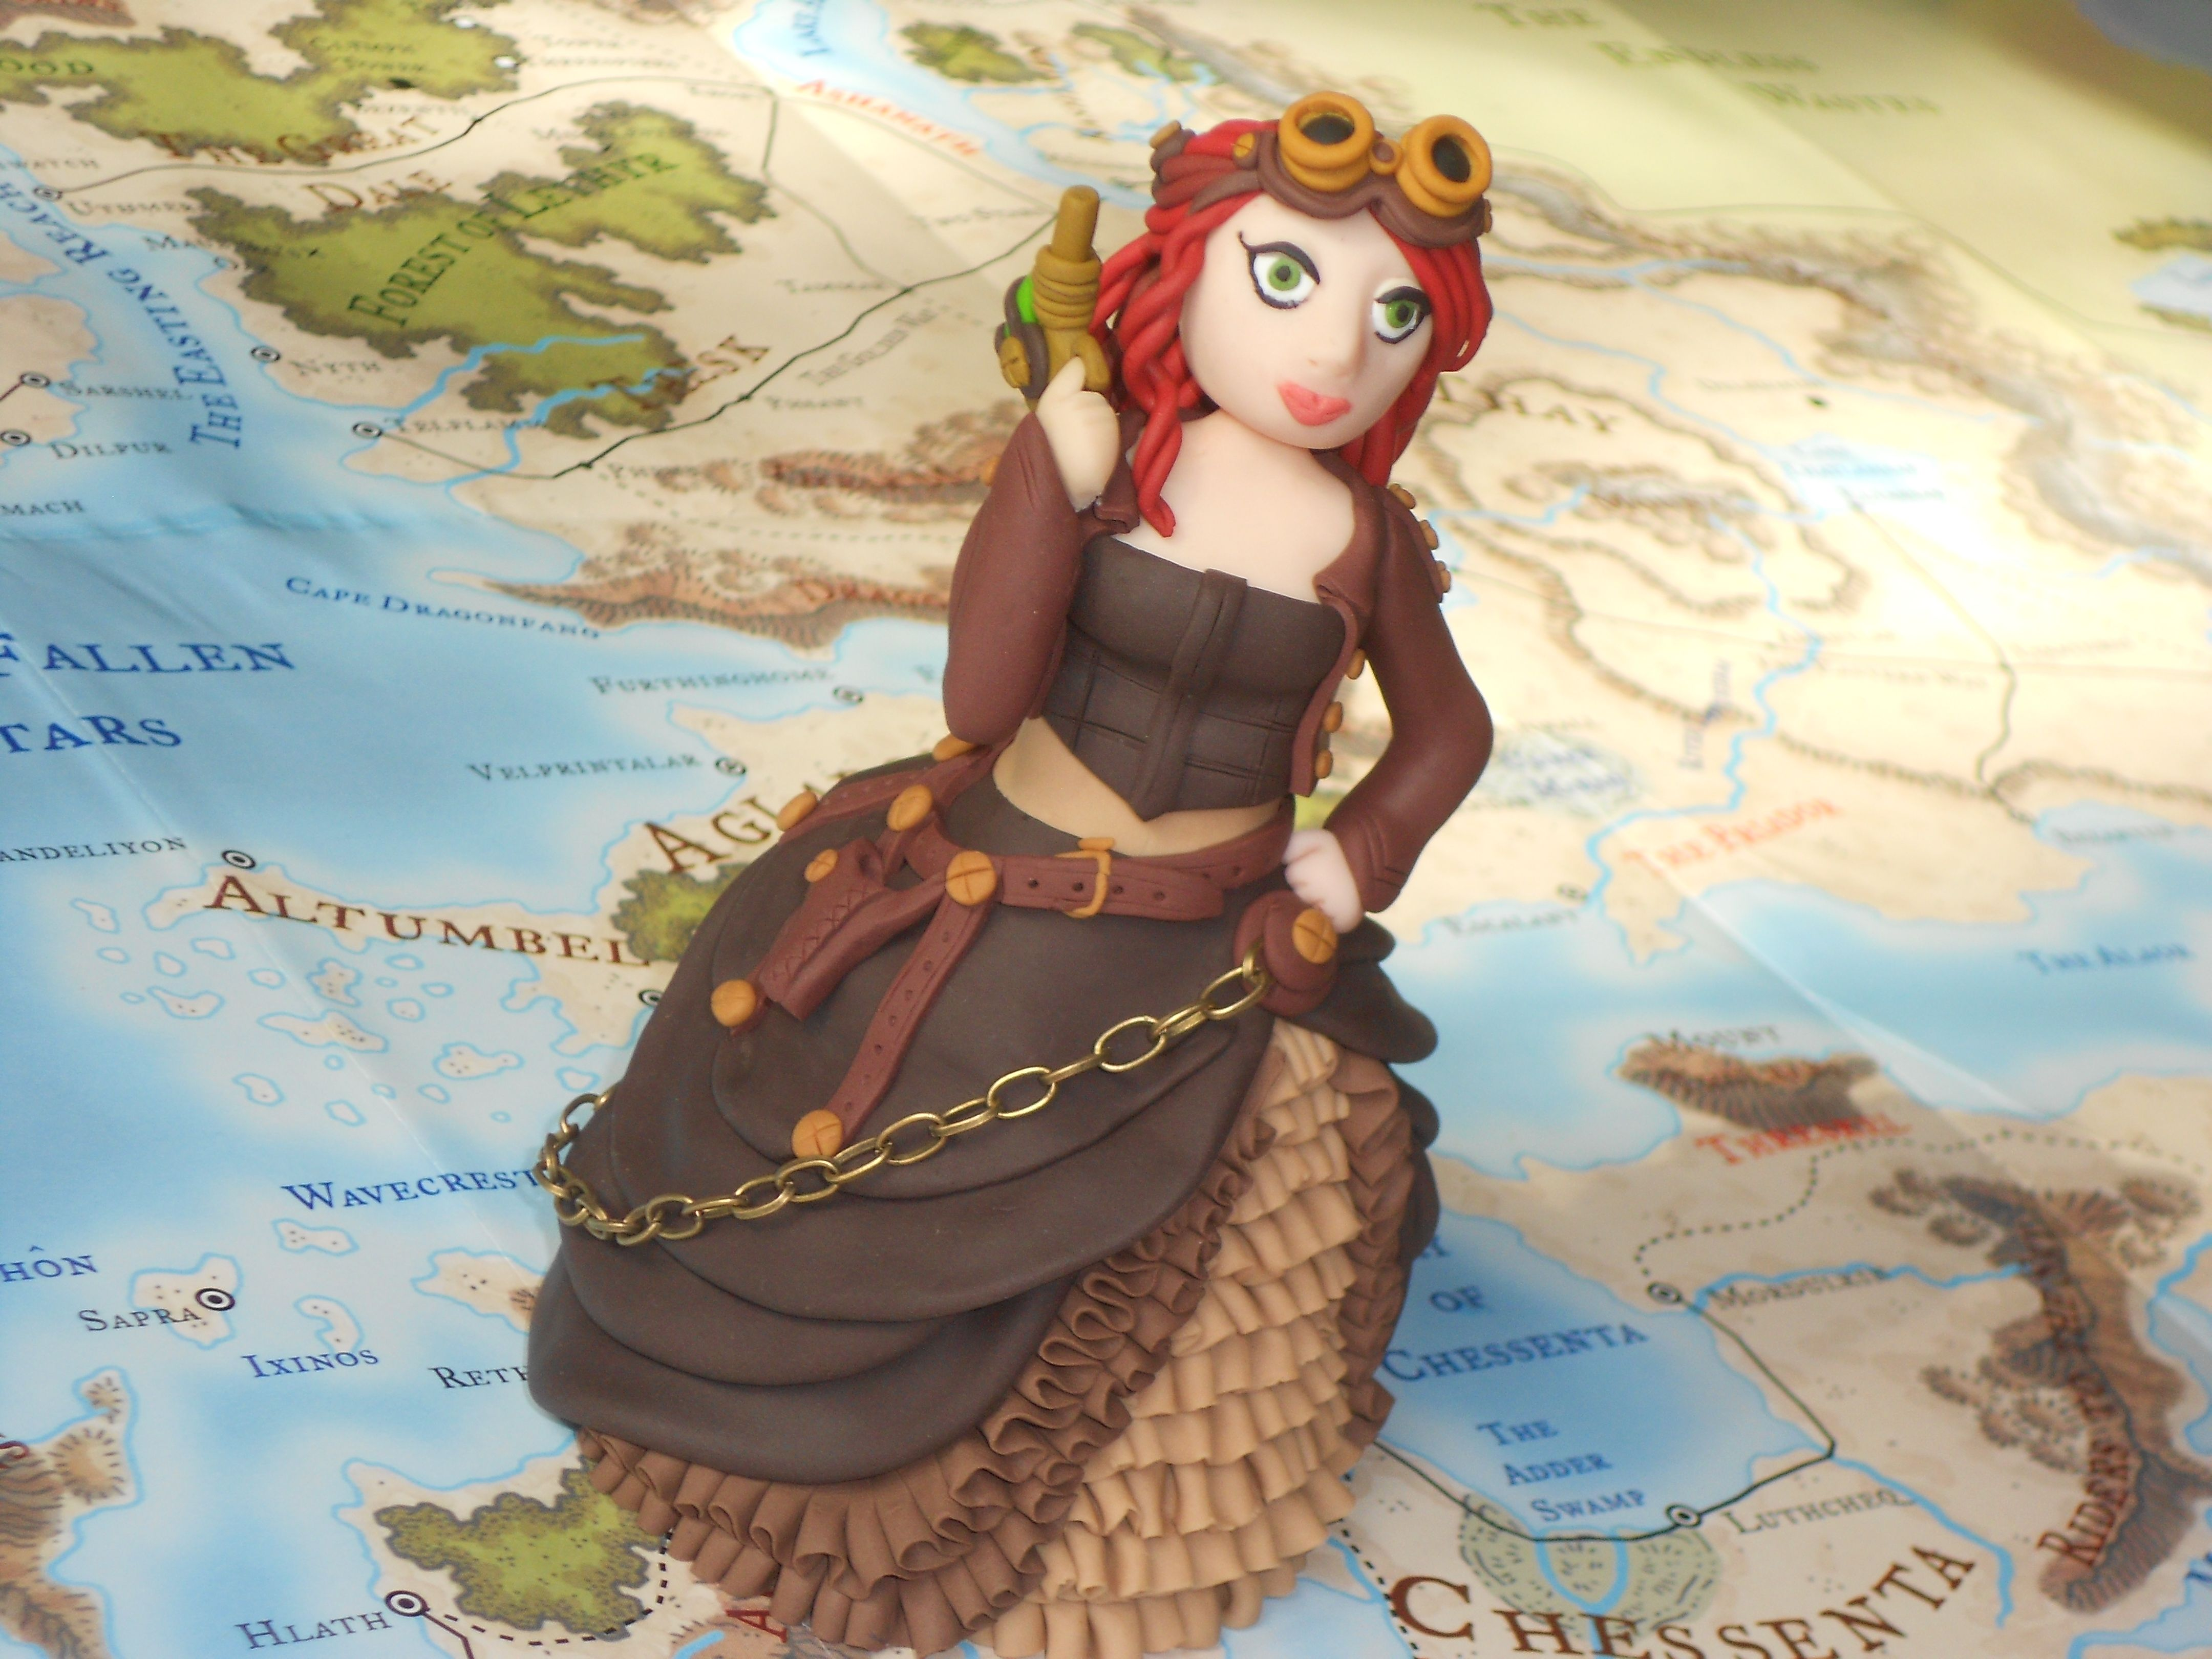 Polymer clay fimo steampunk steam girl figurine or cake topper